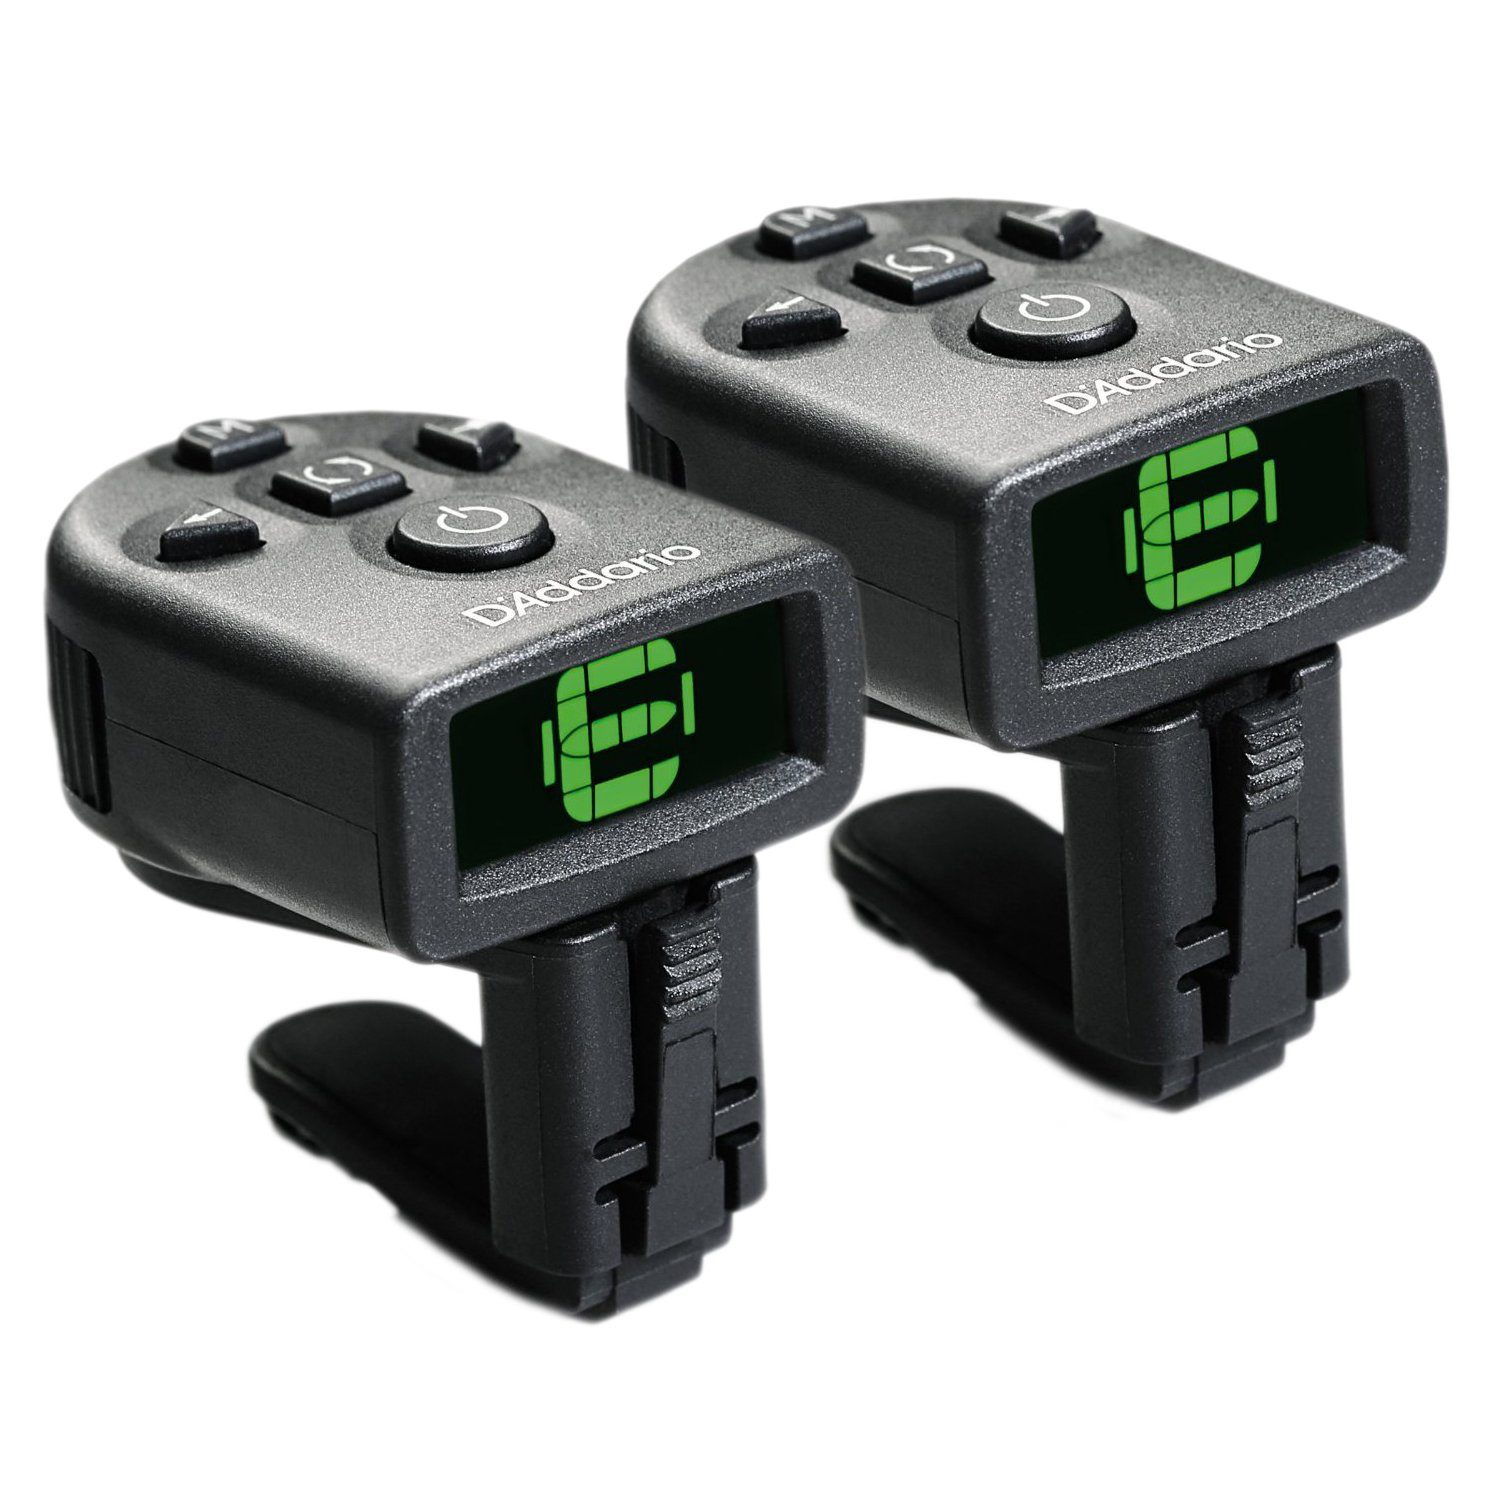 Planet Waves D'Addario NS Micro Clip-On Tuner, 2 pack - Two Pack PW-CT-12TP